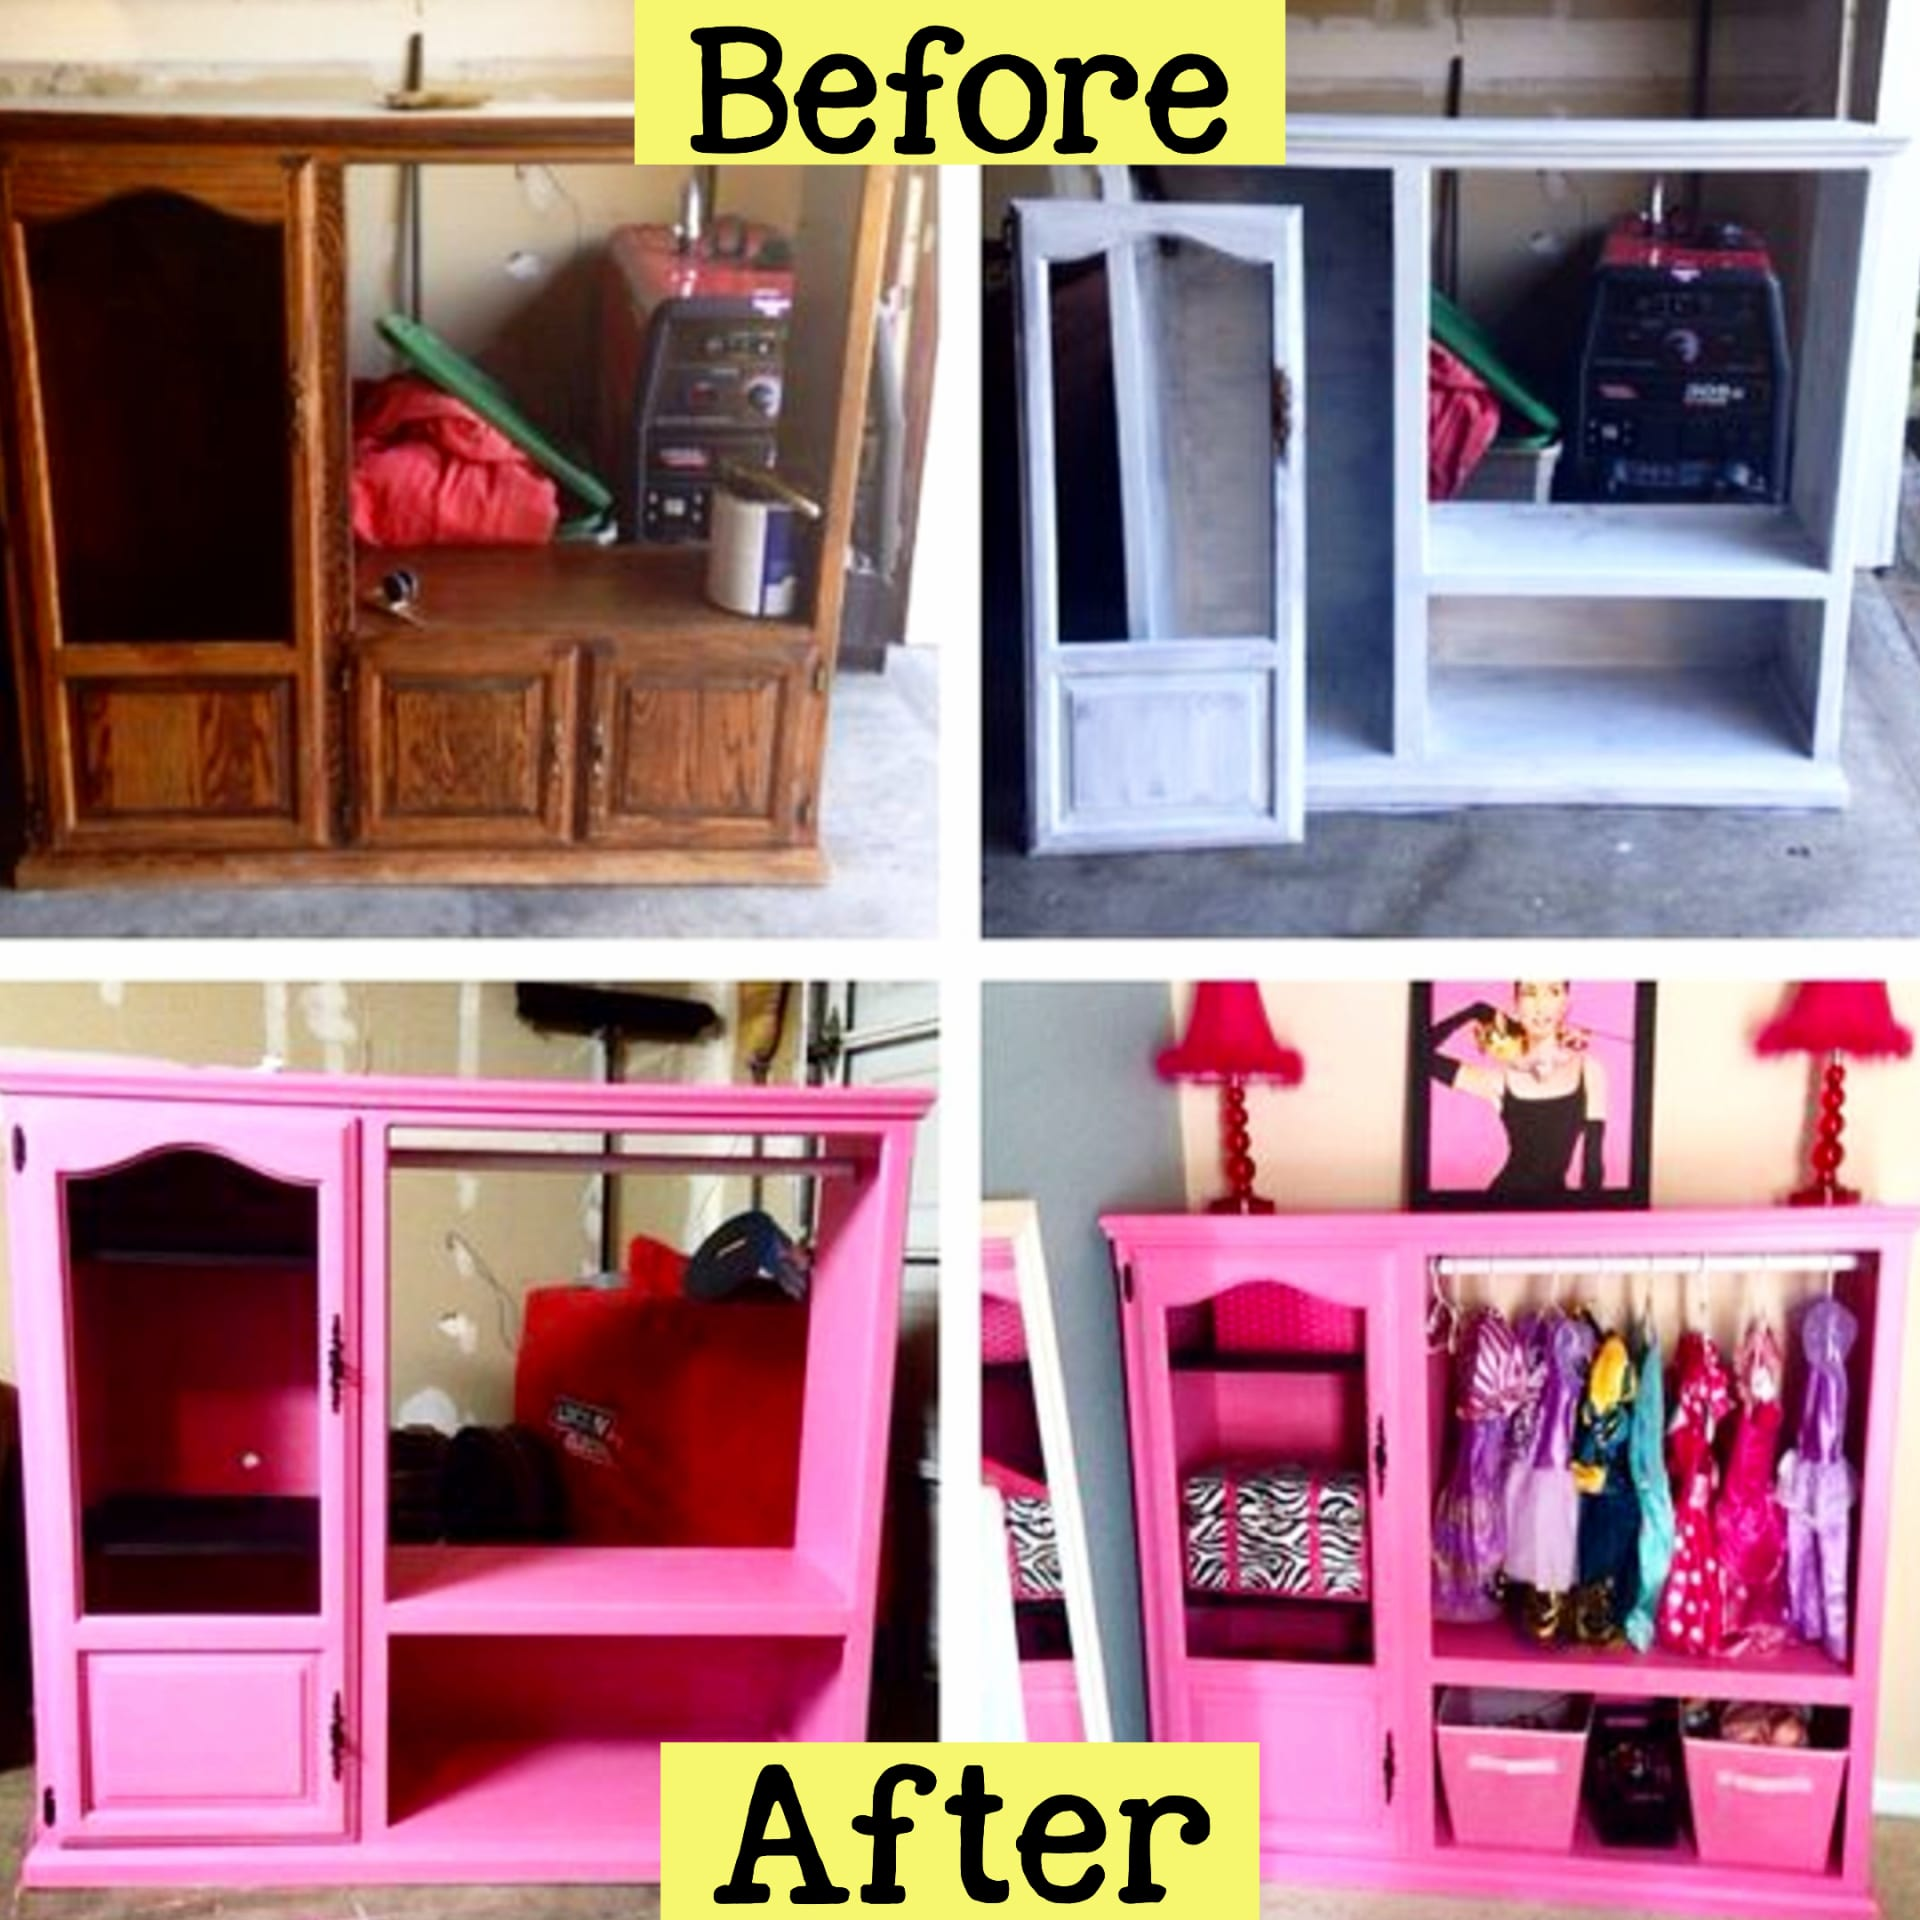 repurposed furniture ideas - turn an old entertainment center into a storage wardrobe dresser for a little girl's bedroom - repurposed dressers and old furniture ideas